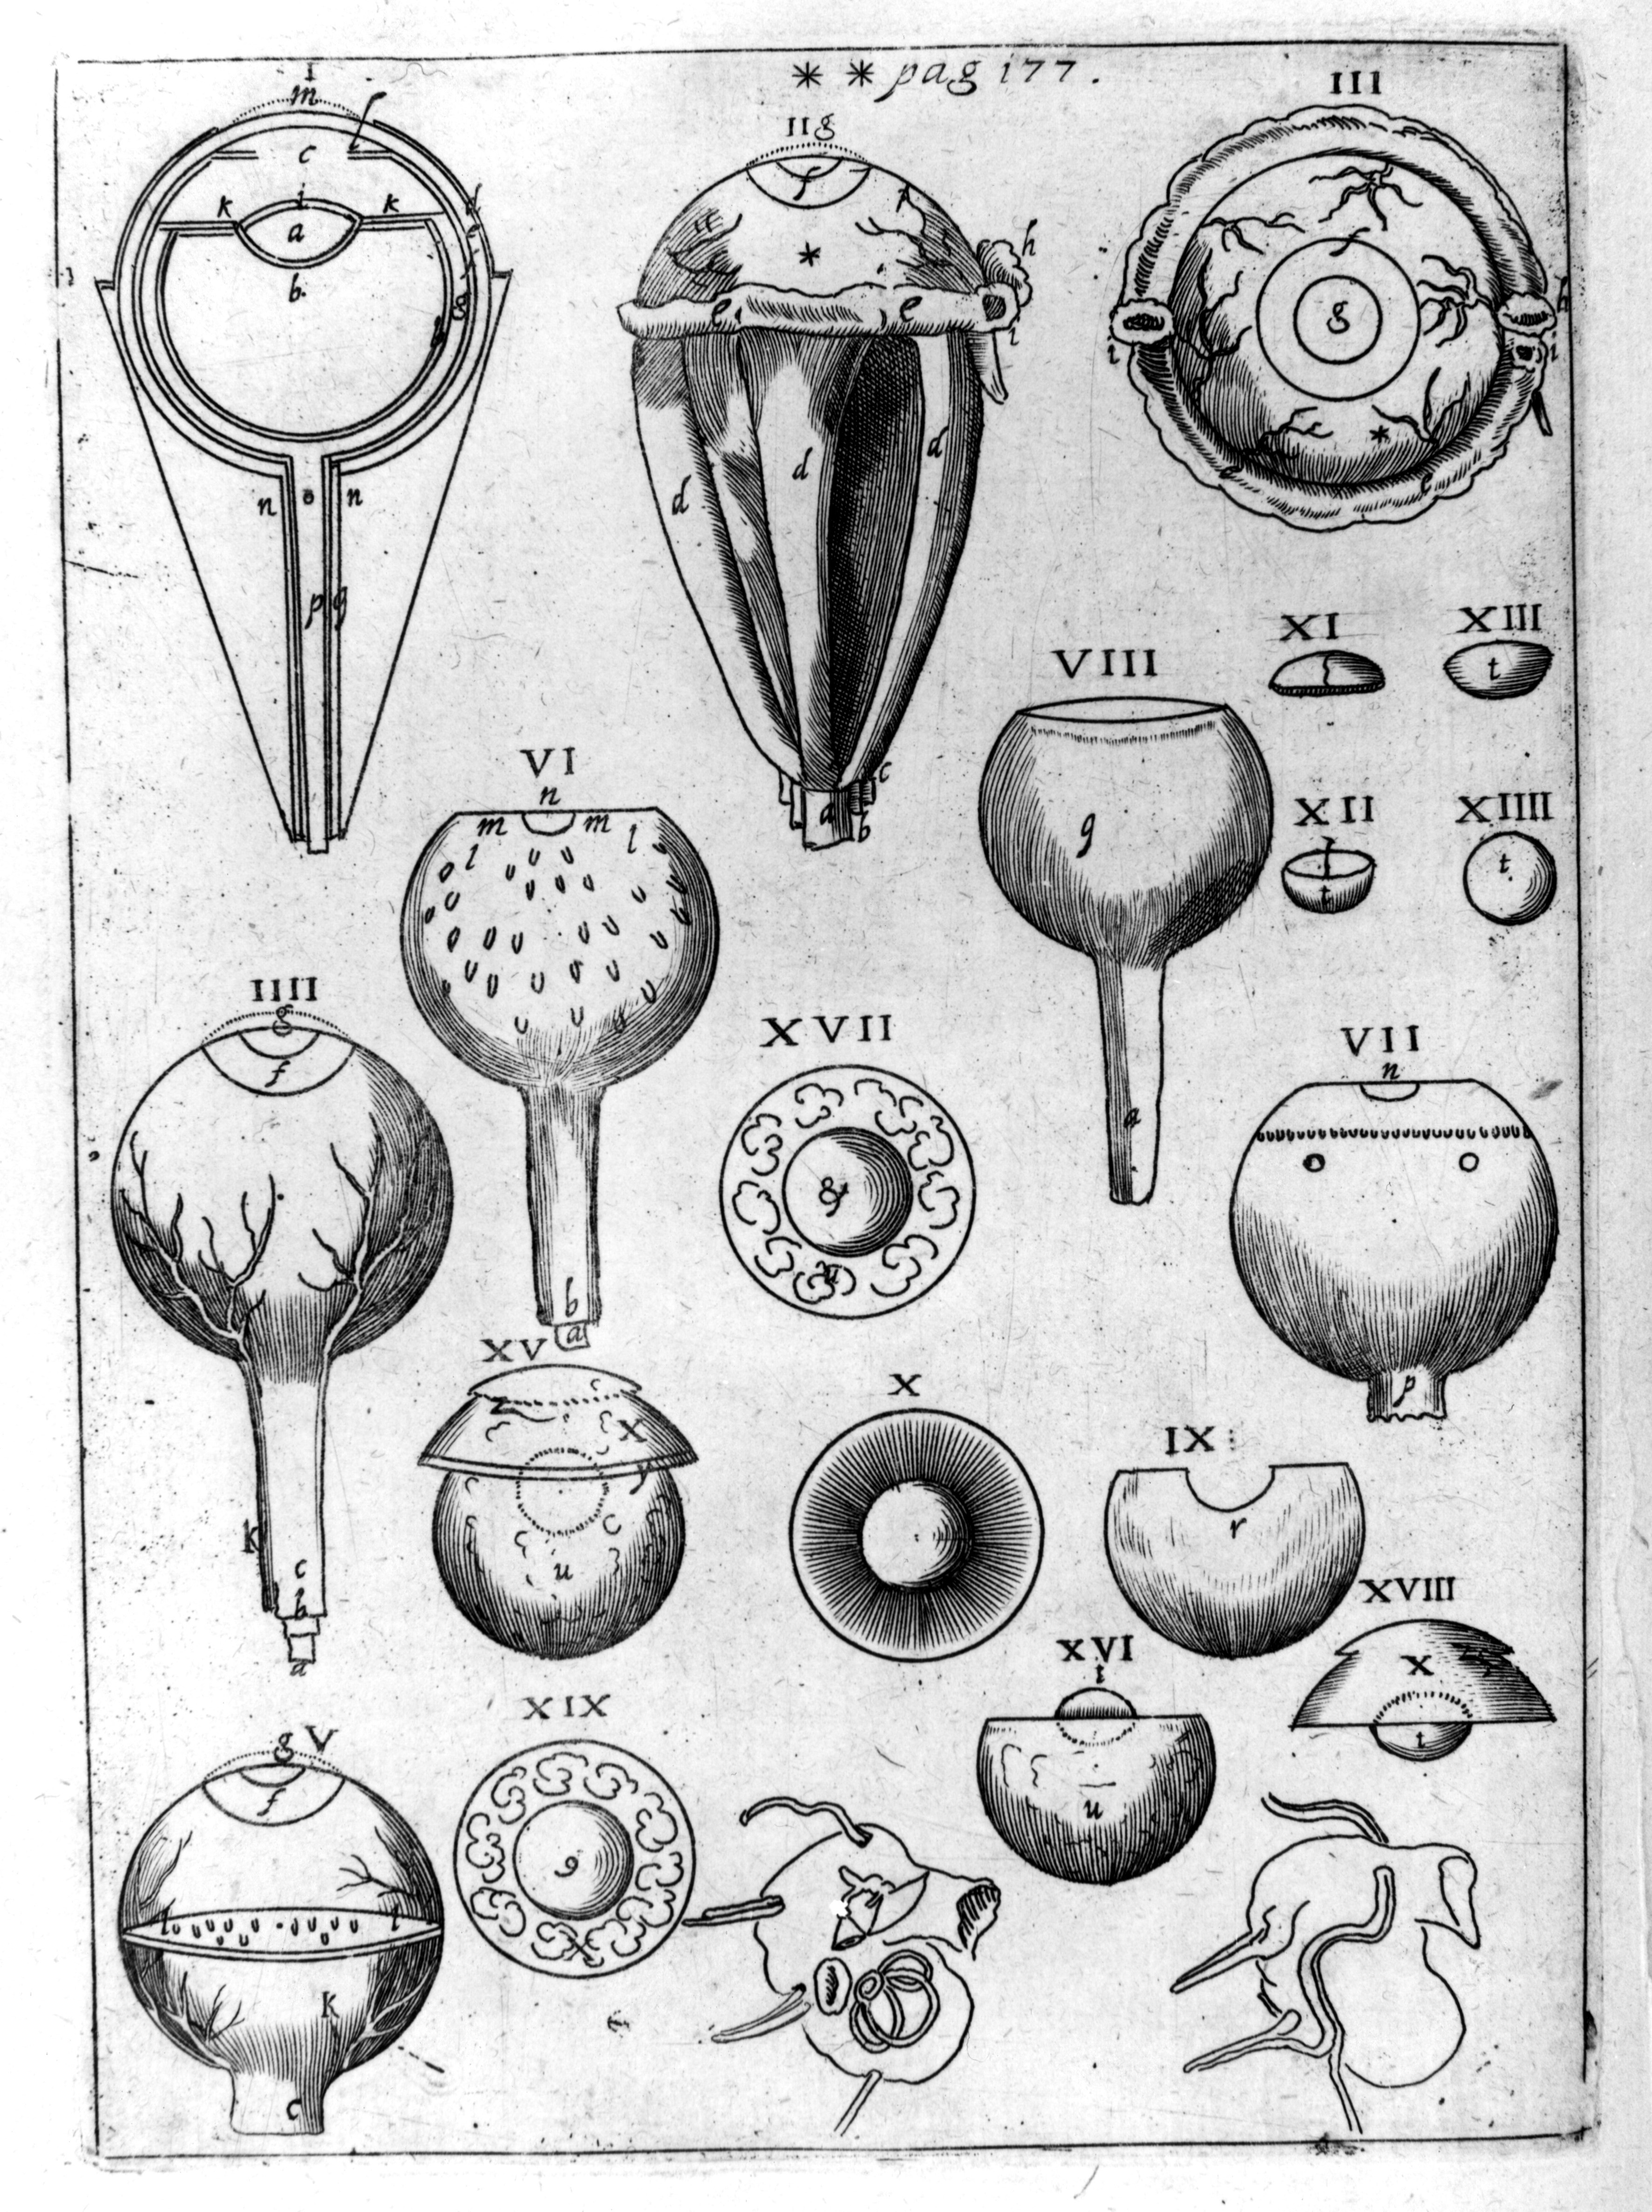 johannes kepler summary The astronomers tycho brahe and johannes kepler tycho brahe (1546-1601,  shown at left) was a nobleman from denmark who made astronomy his.